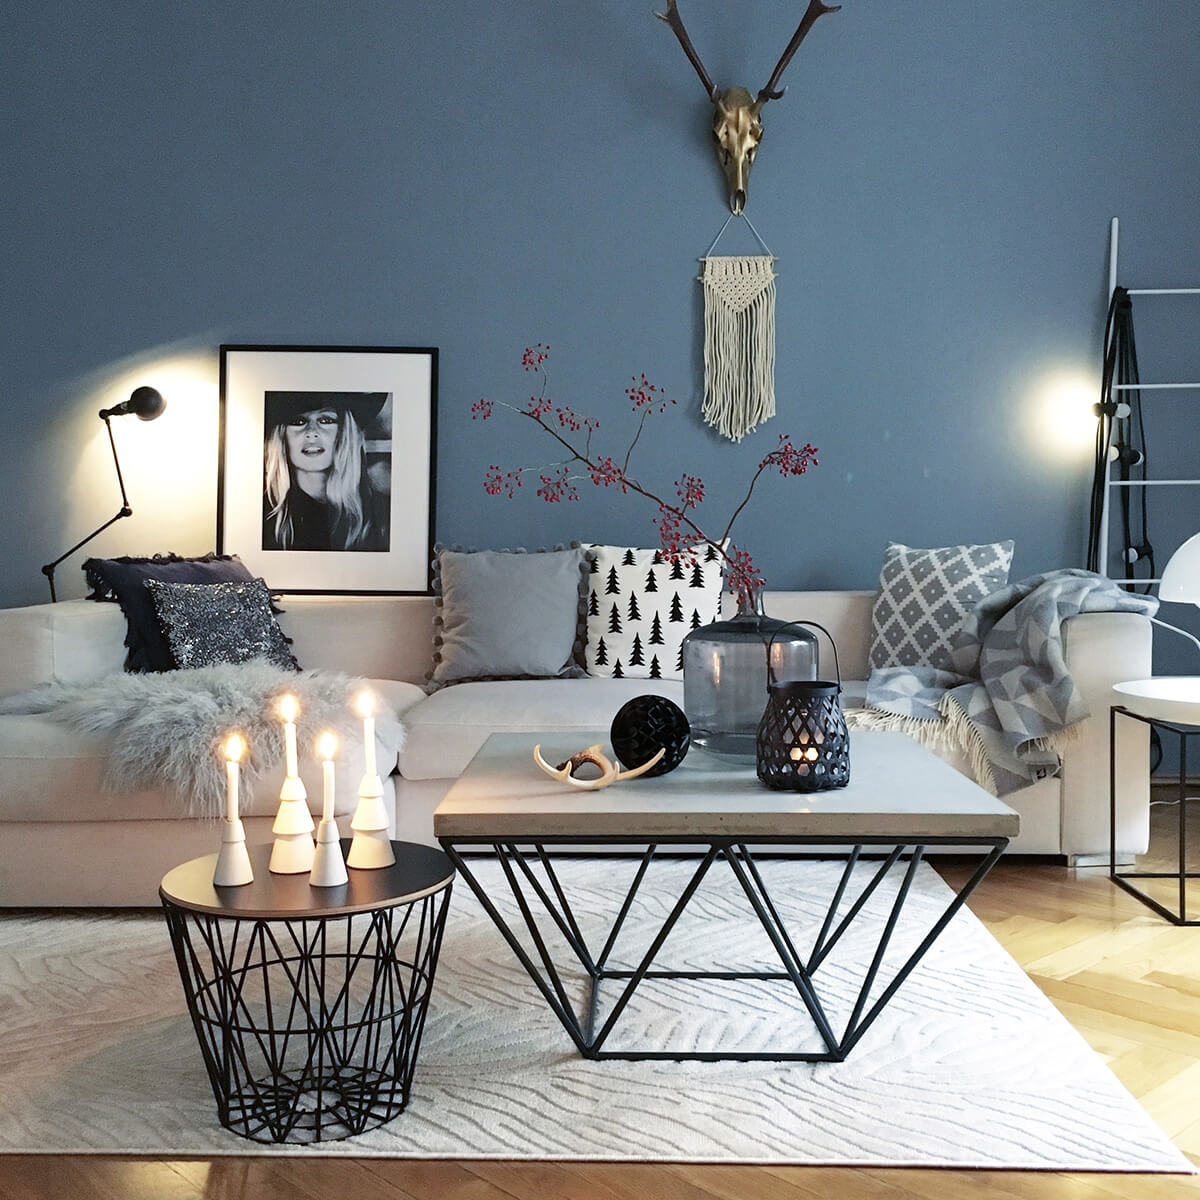 12 Modern Minimalist Flower And Candle Display In Shades Of Grey